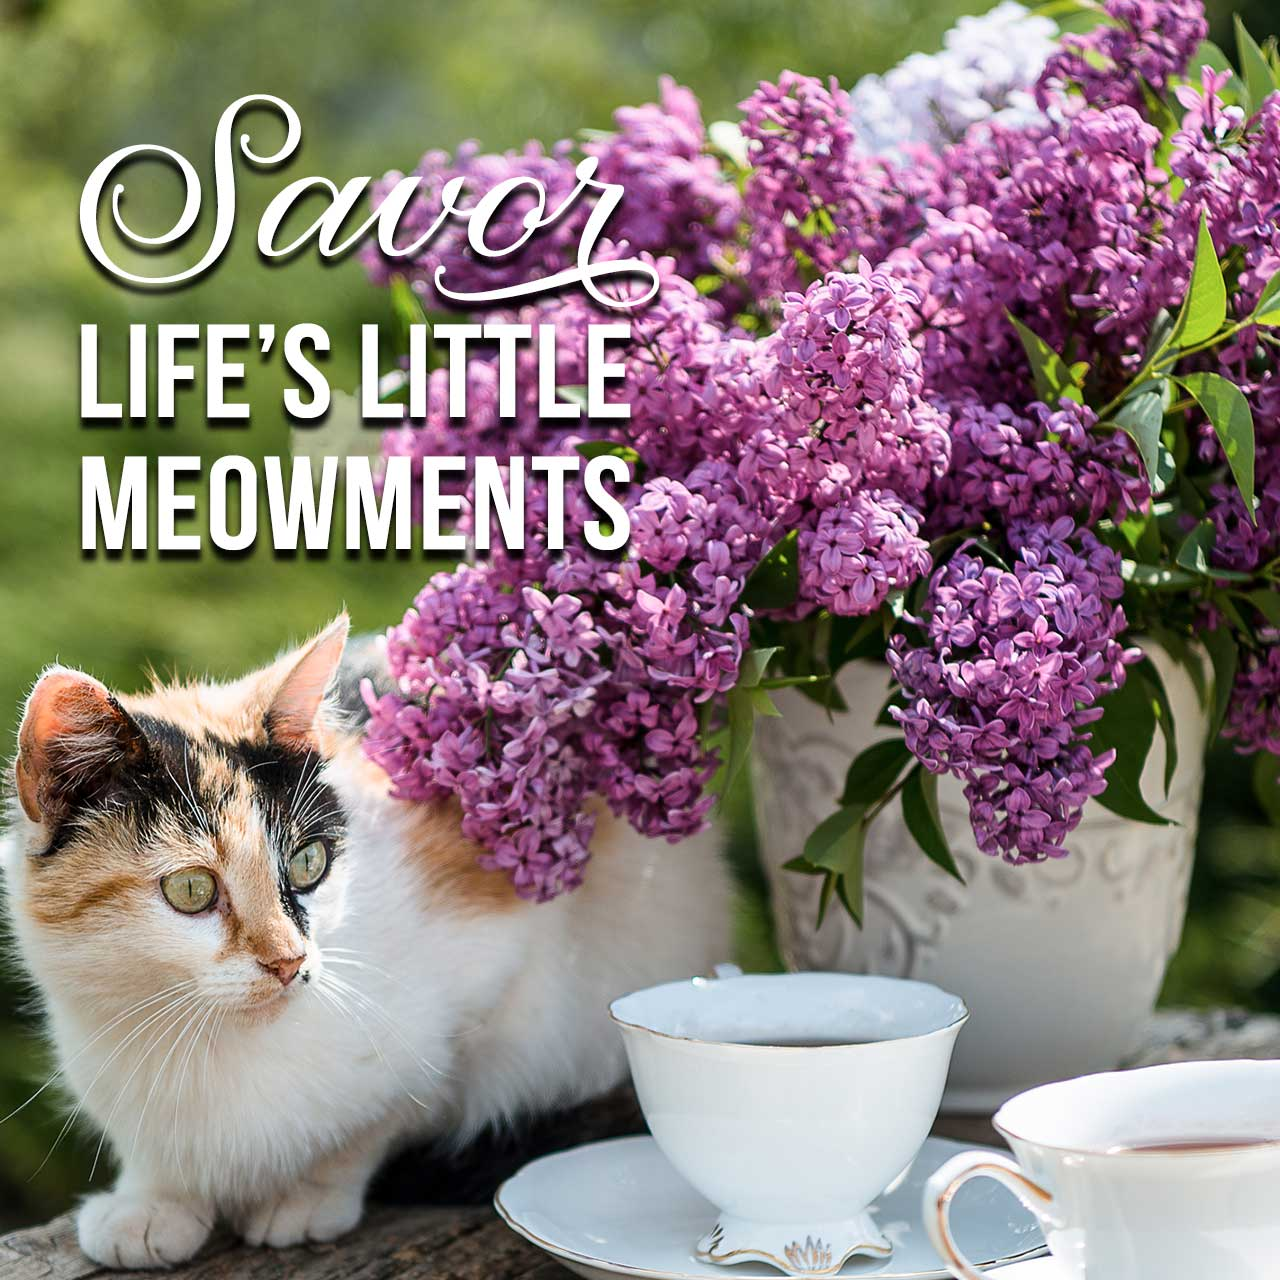 Savor Life's little Meowments